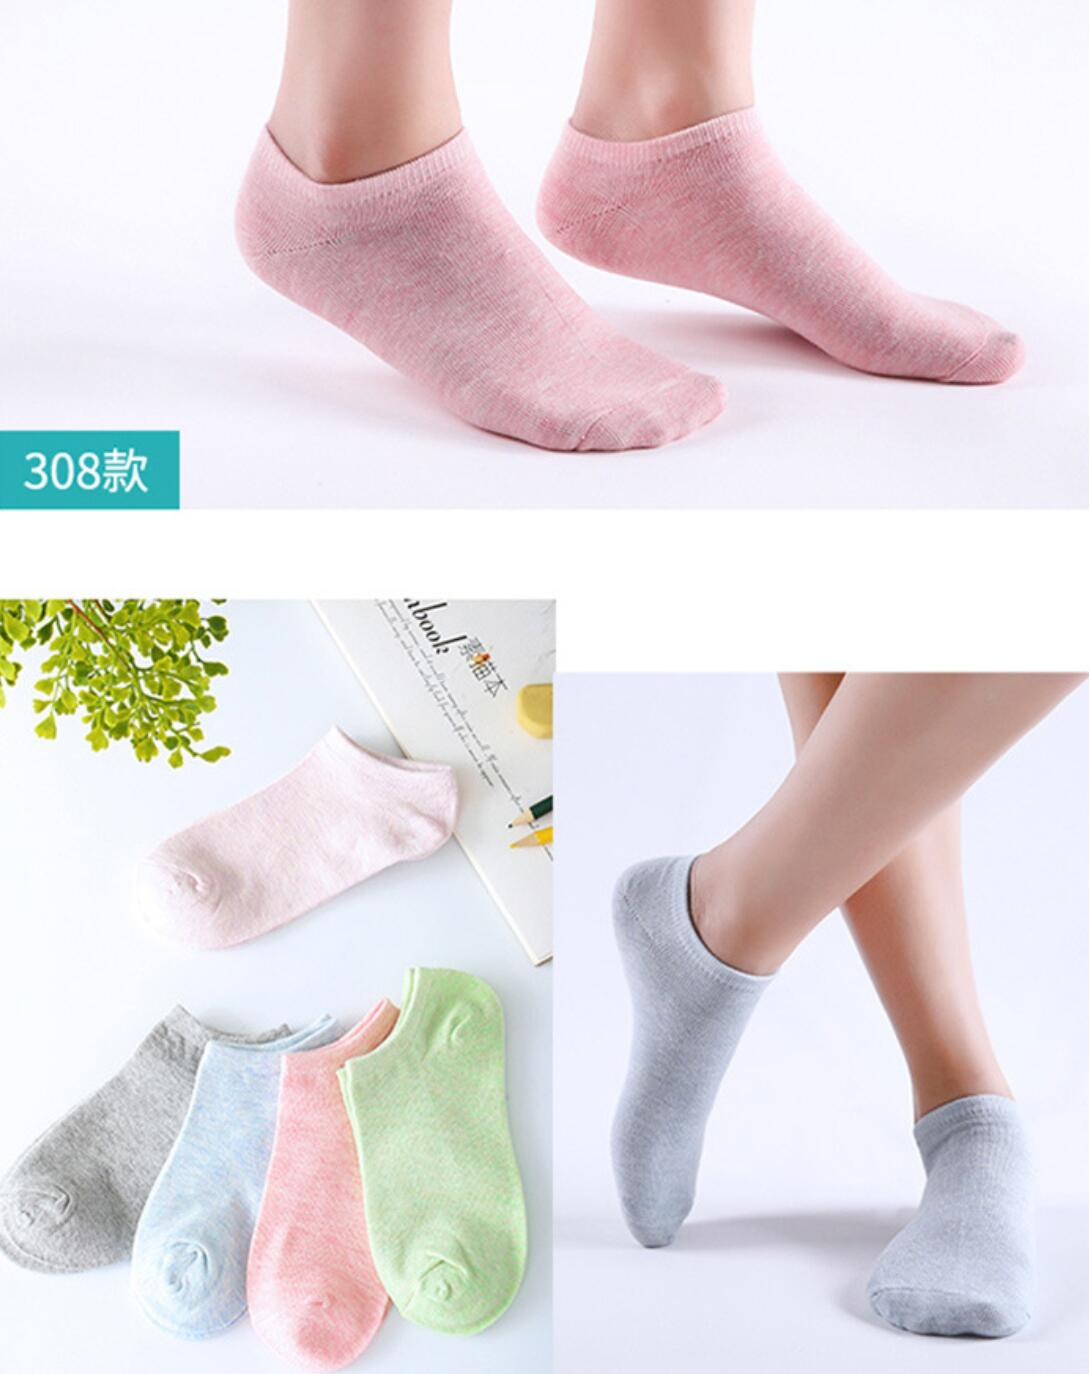 NEW 2018 Fashion Spring Cotton Women's Socks 9 88 Women Solid Solid Color Short Sock W093 01 W093 05